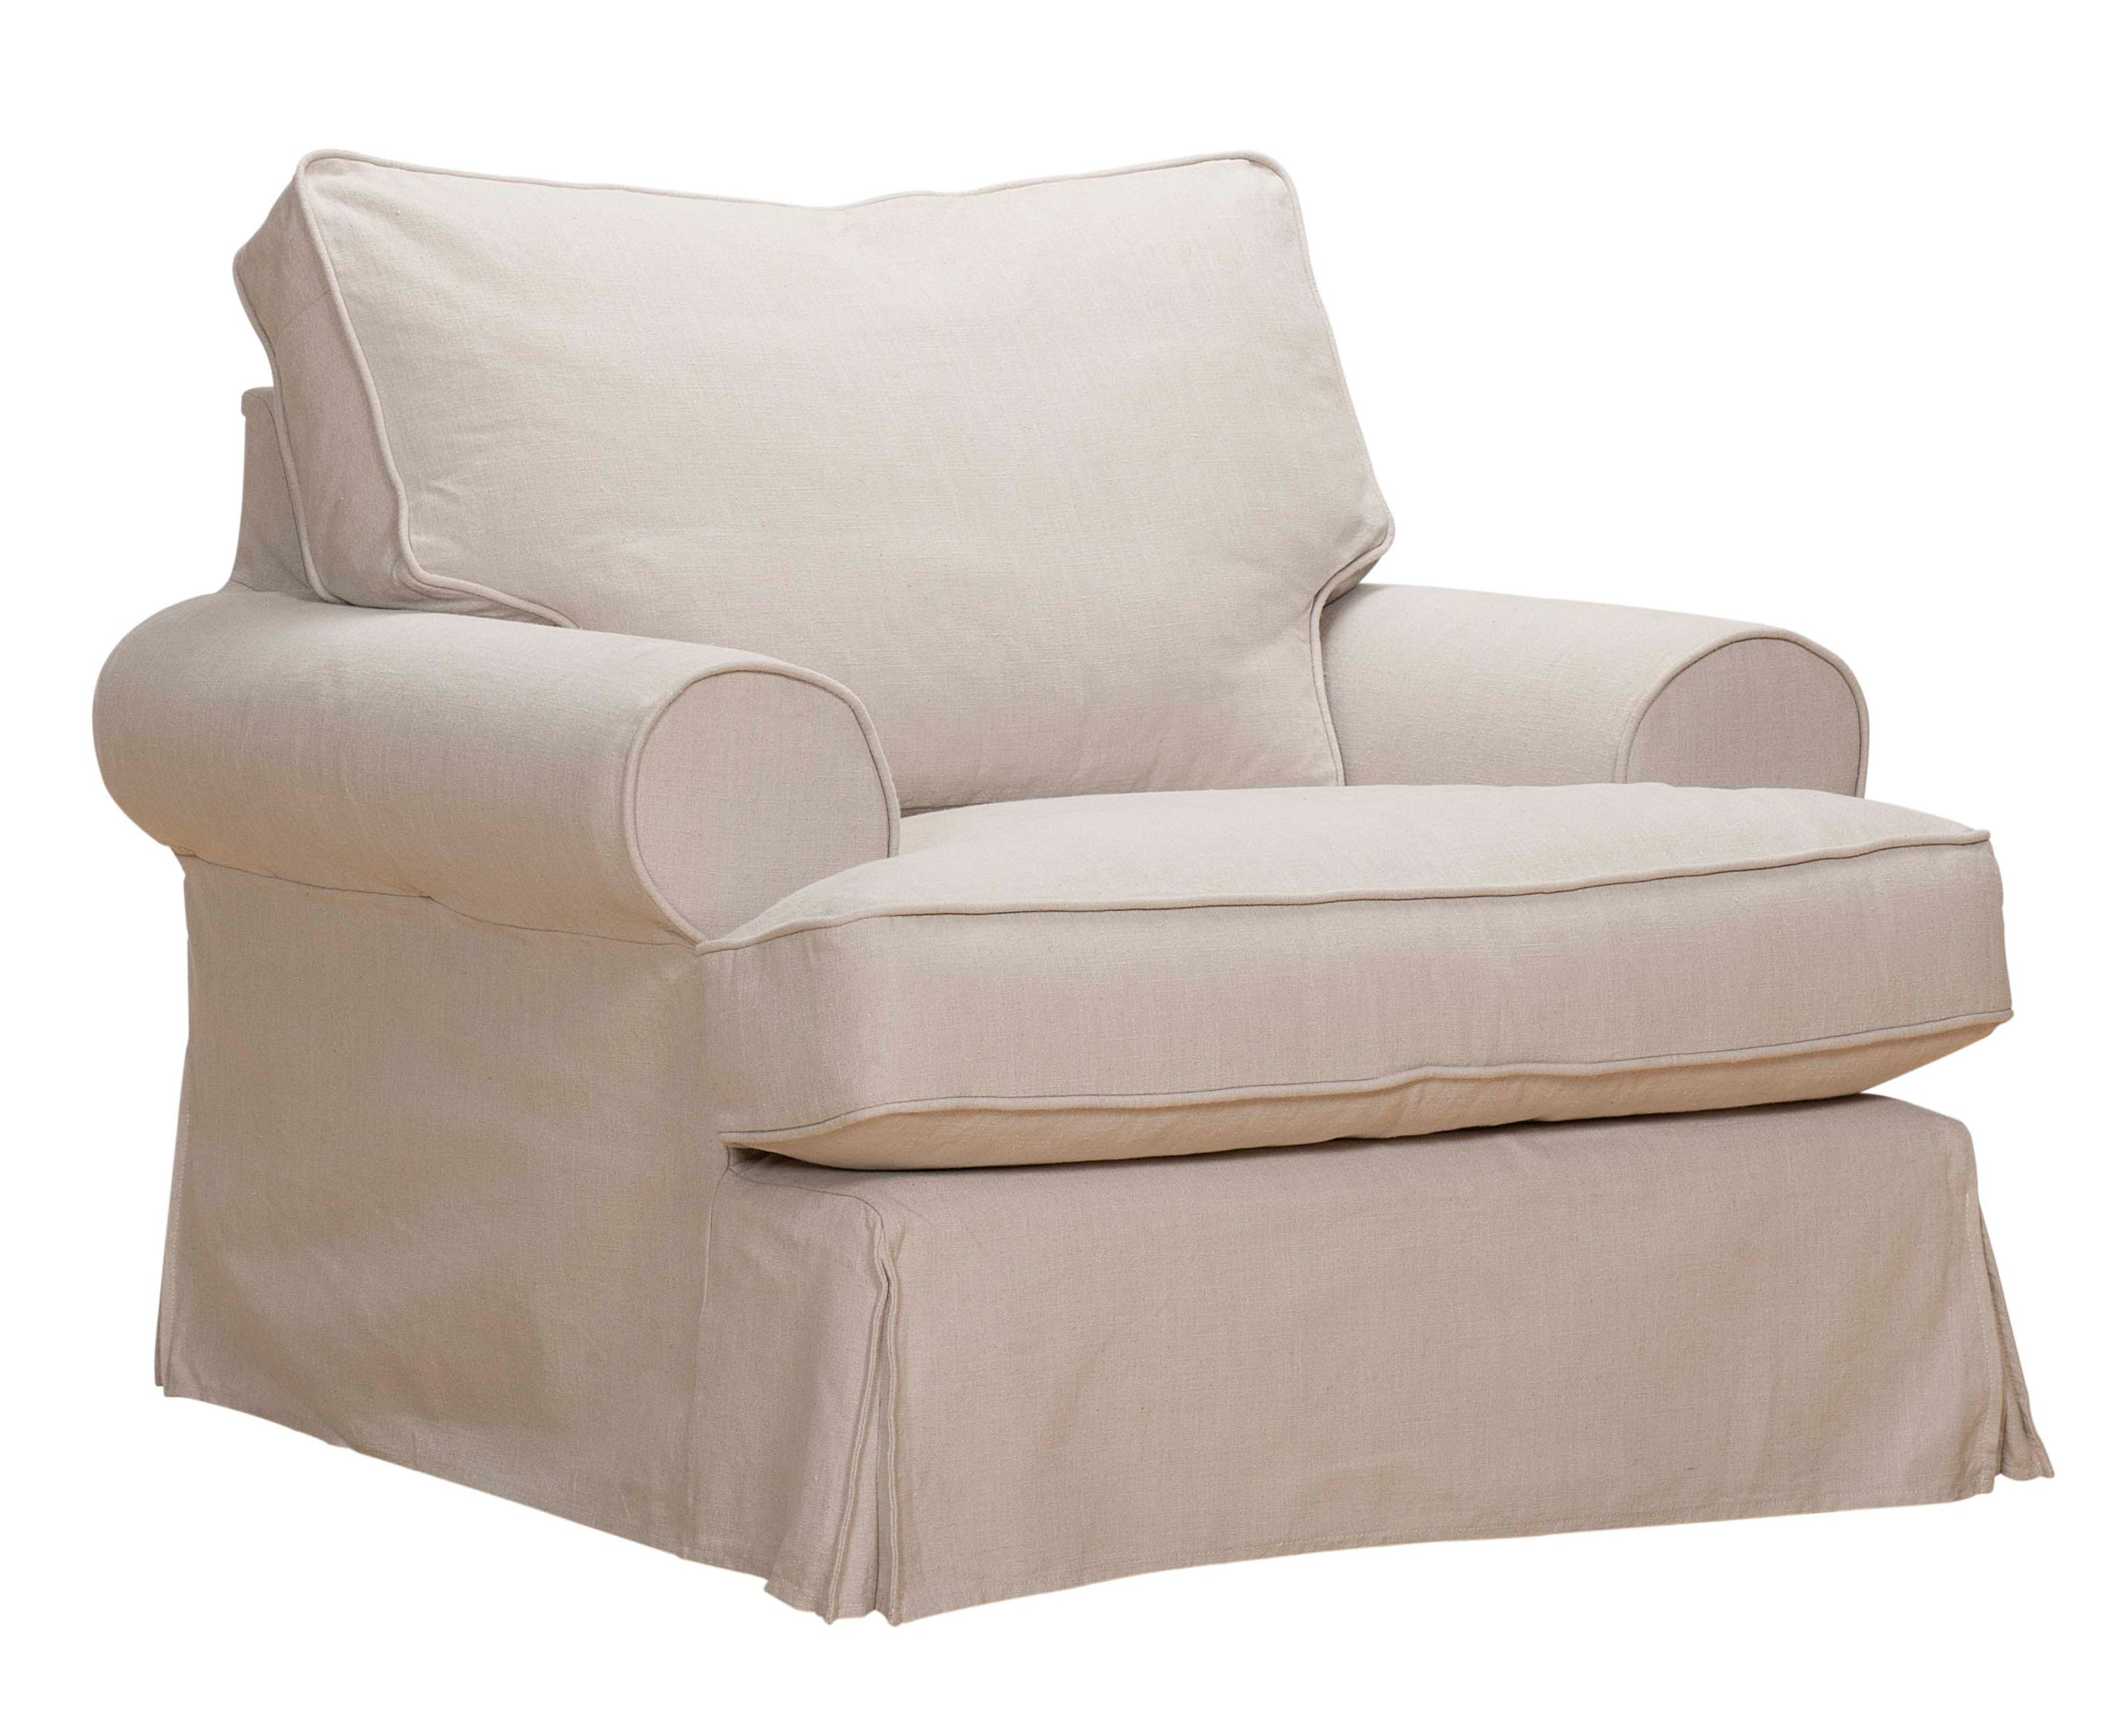 Comfy Major Chair beige